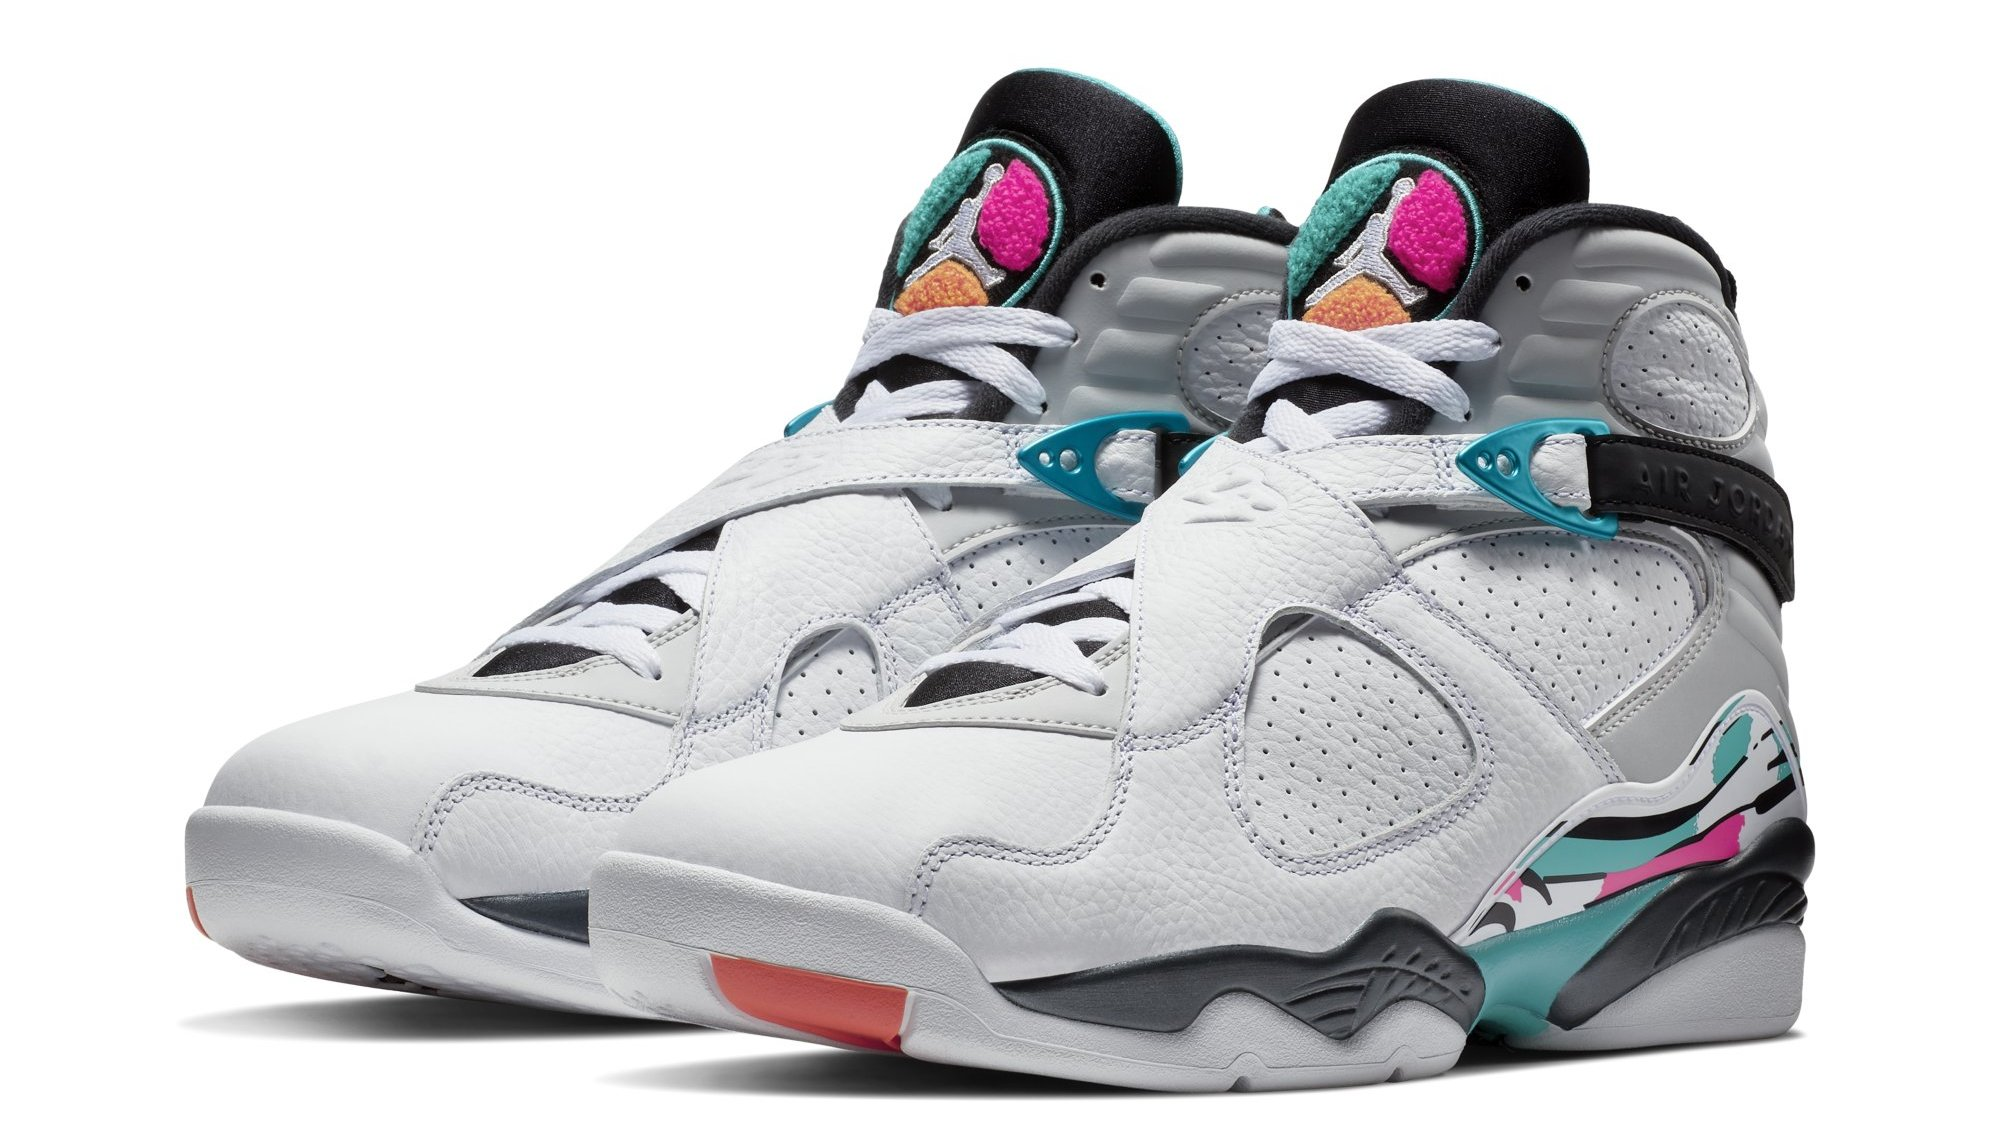 10ff80e152b8 Air Jordan 8 VIII South Beach Release Date 305381-113